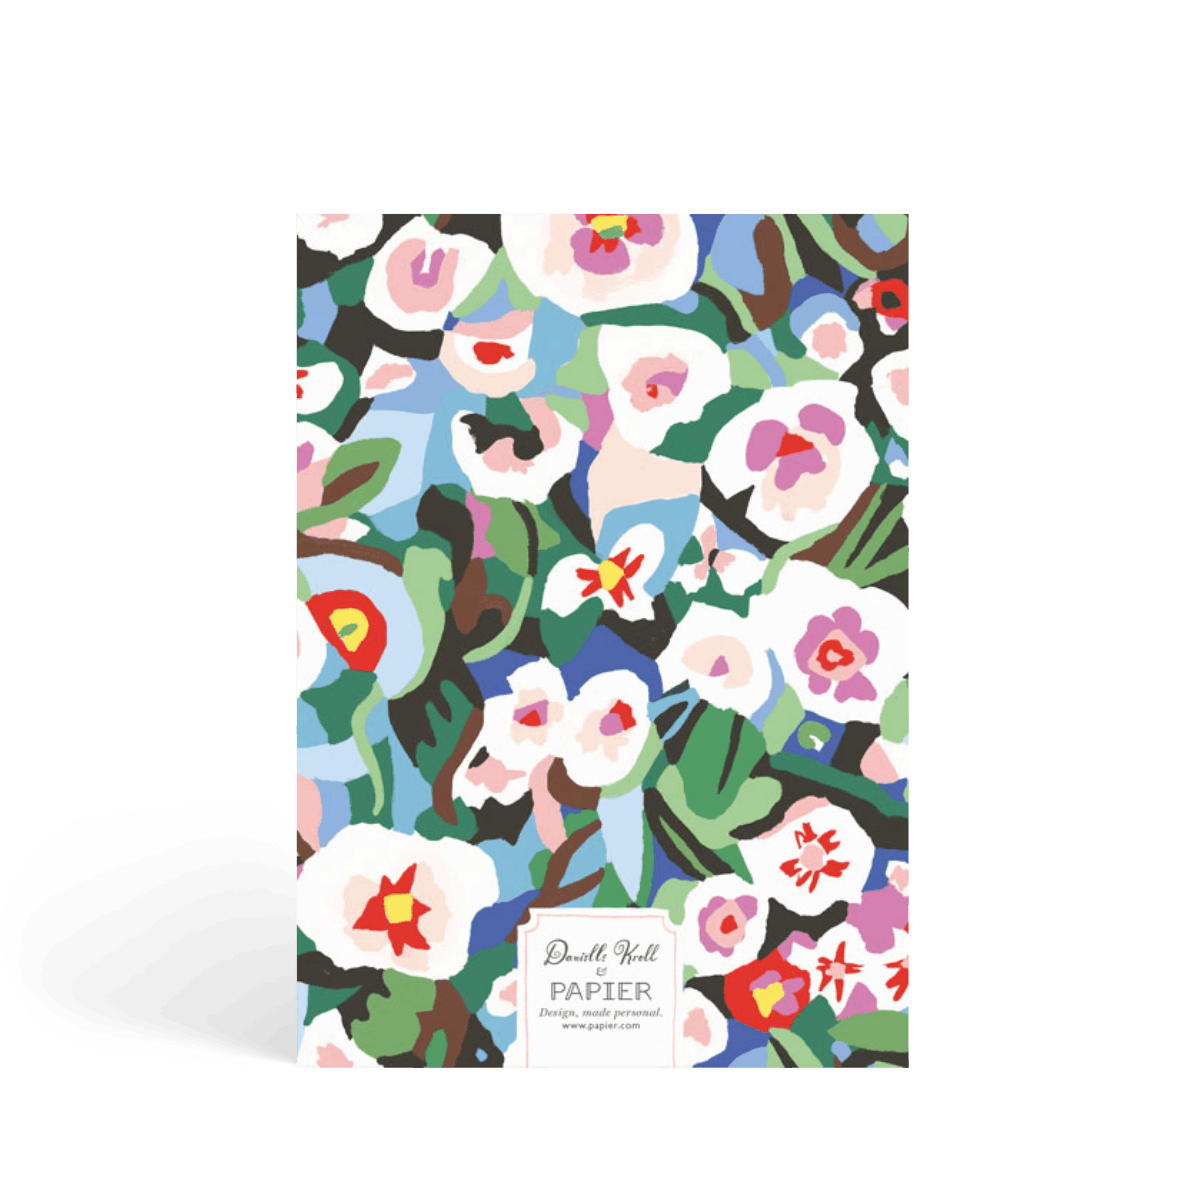 Https%3a%2f%2fwww.papier.com%2fproduct image%2f54046%2f5%2fabstract flowers 13002 back 1542291644.png?ixlib=rb 1.1